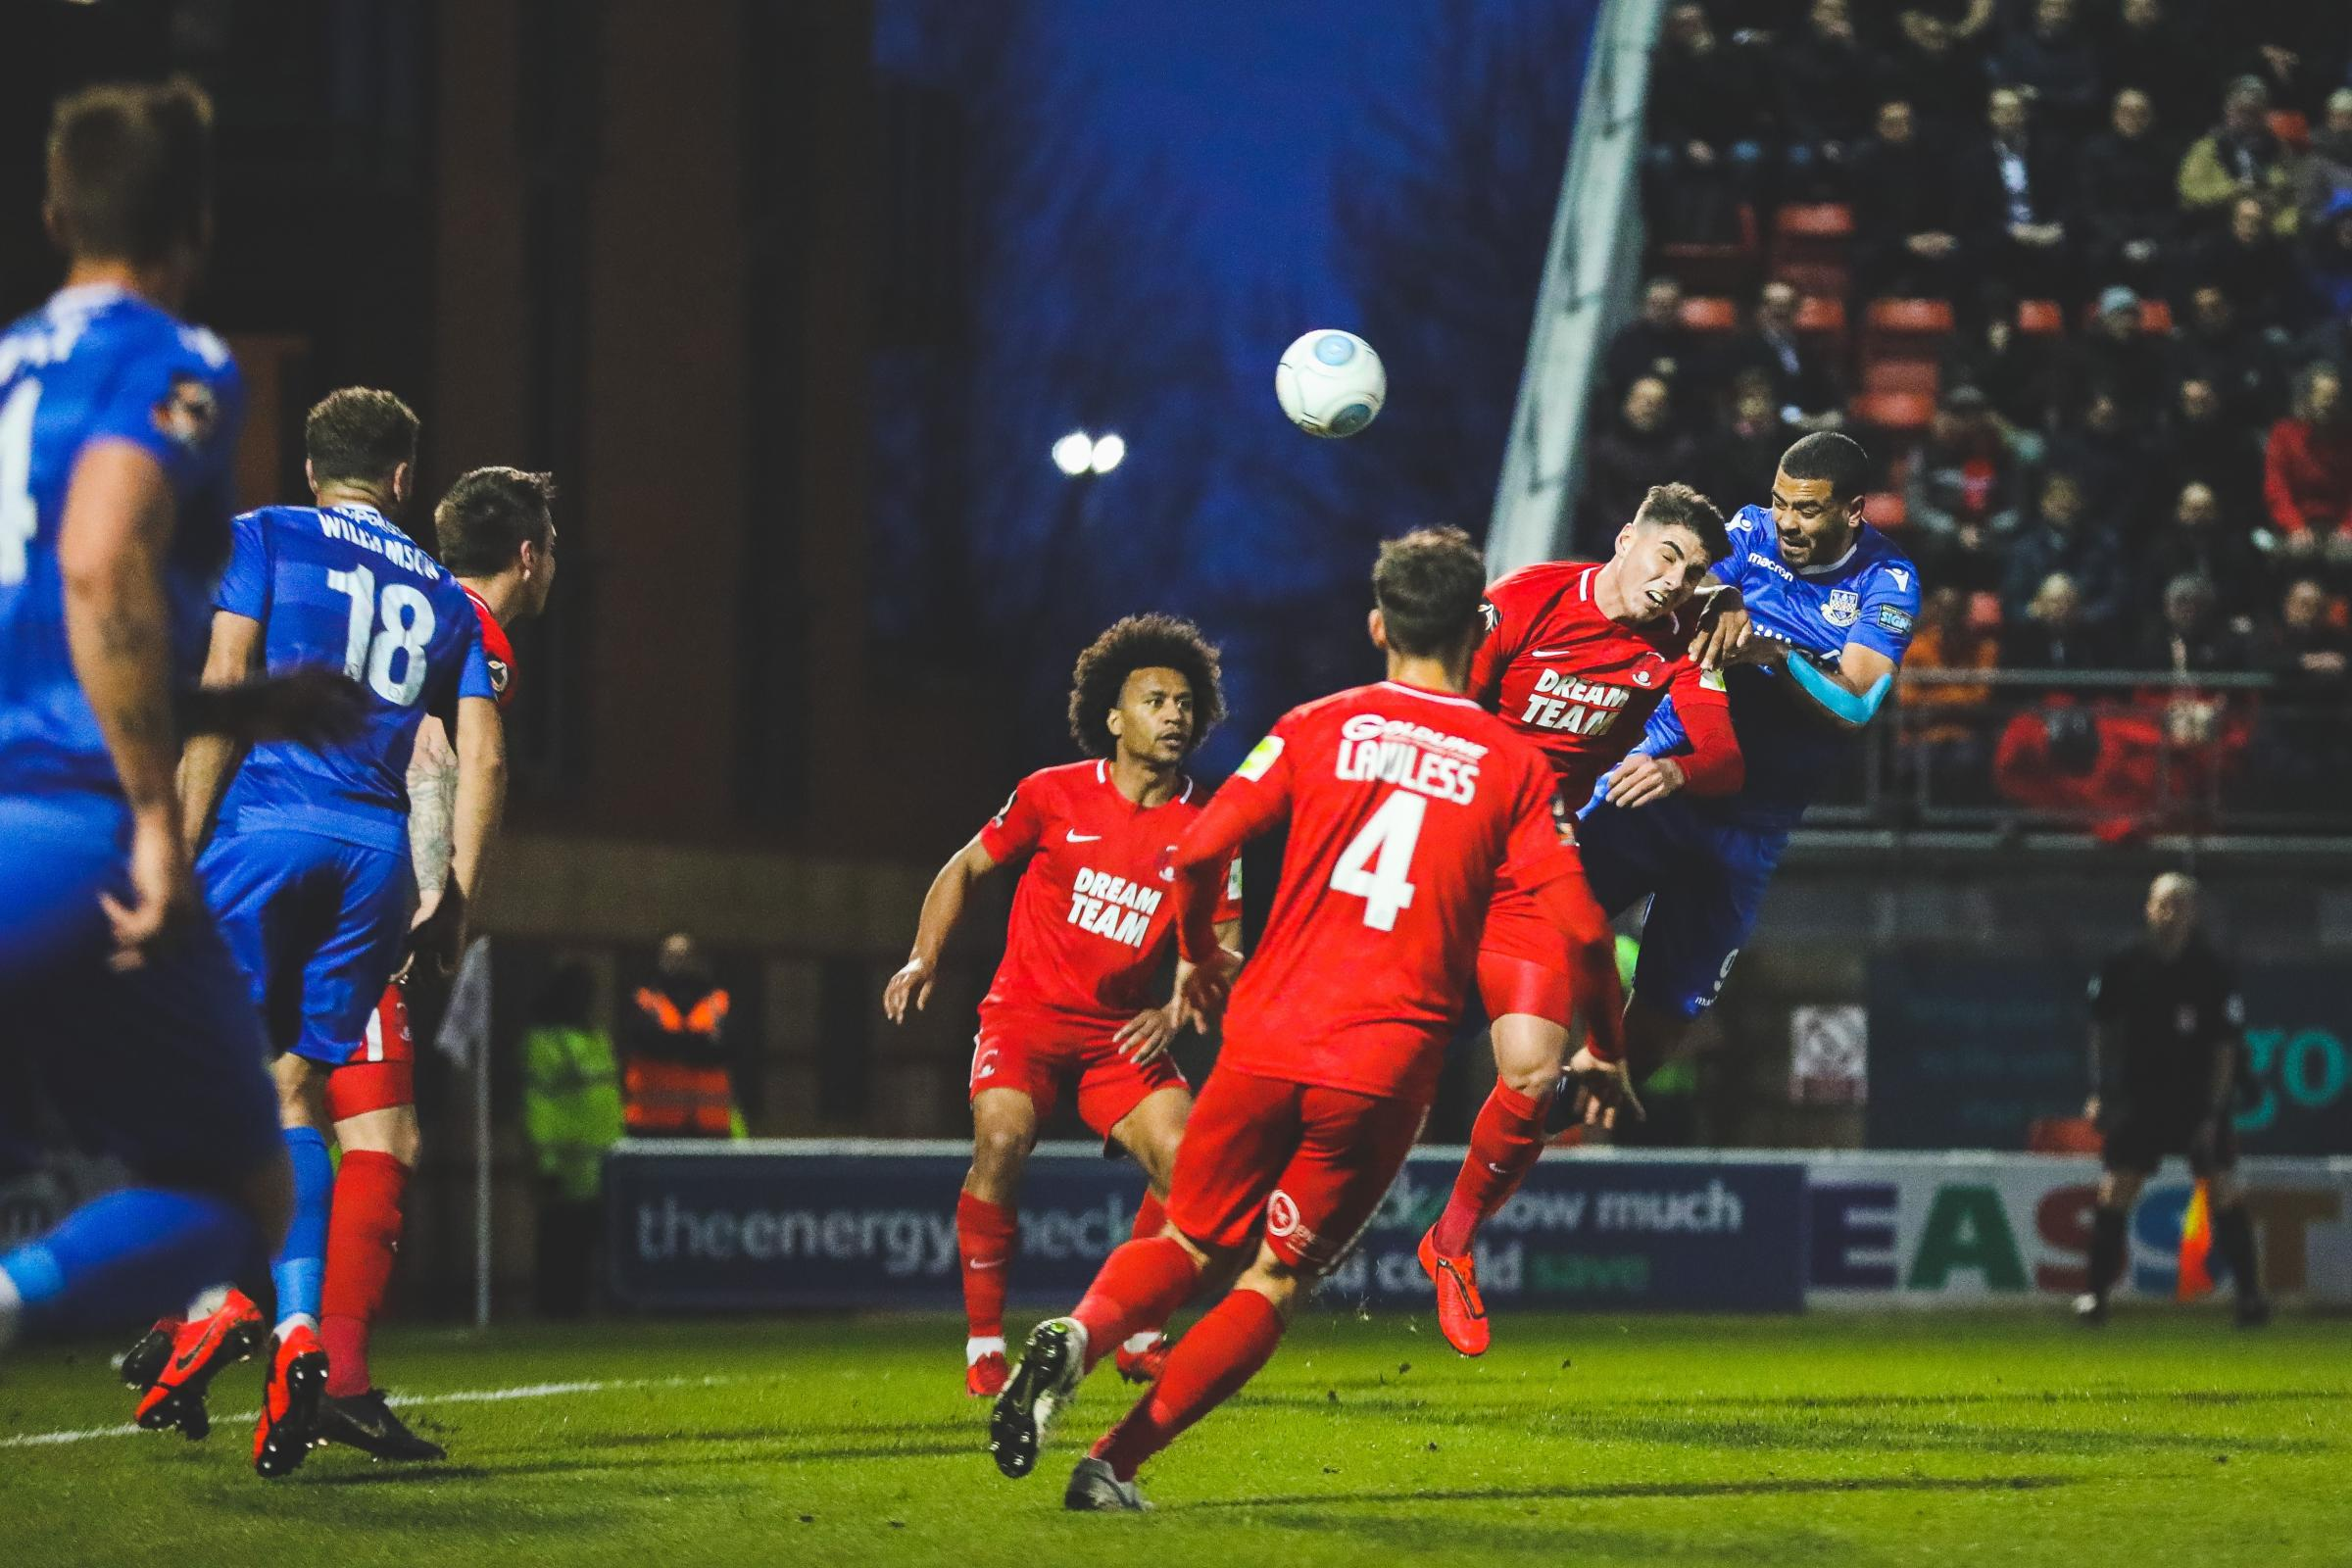 Paul McCallum heads in his second goal at Orient on Tuesday (photo: Tom Mulholland)